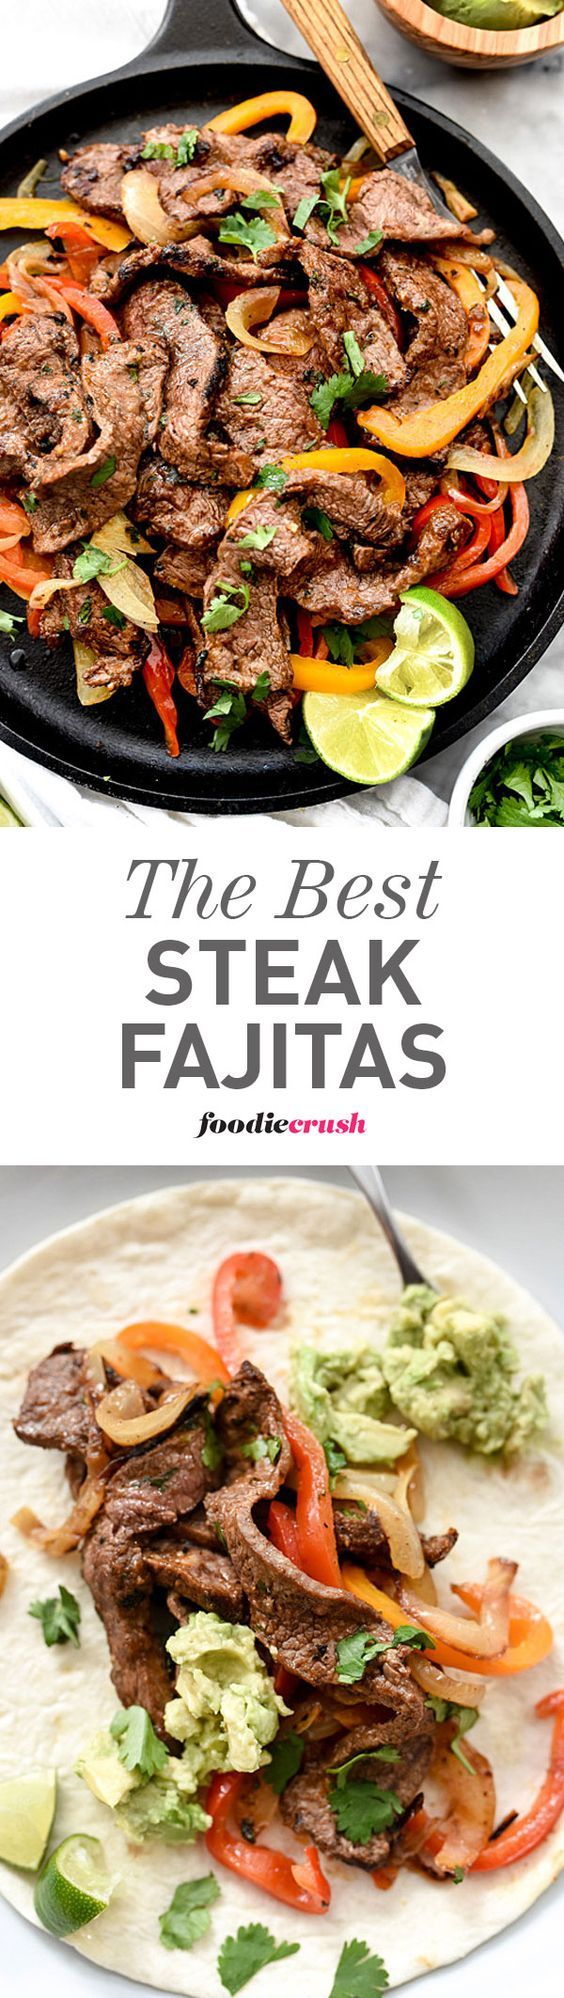 The homemade fajita spice mix is what makes these Steak Fajitas the best I've ever eaten